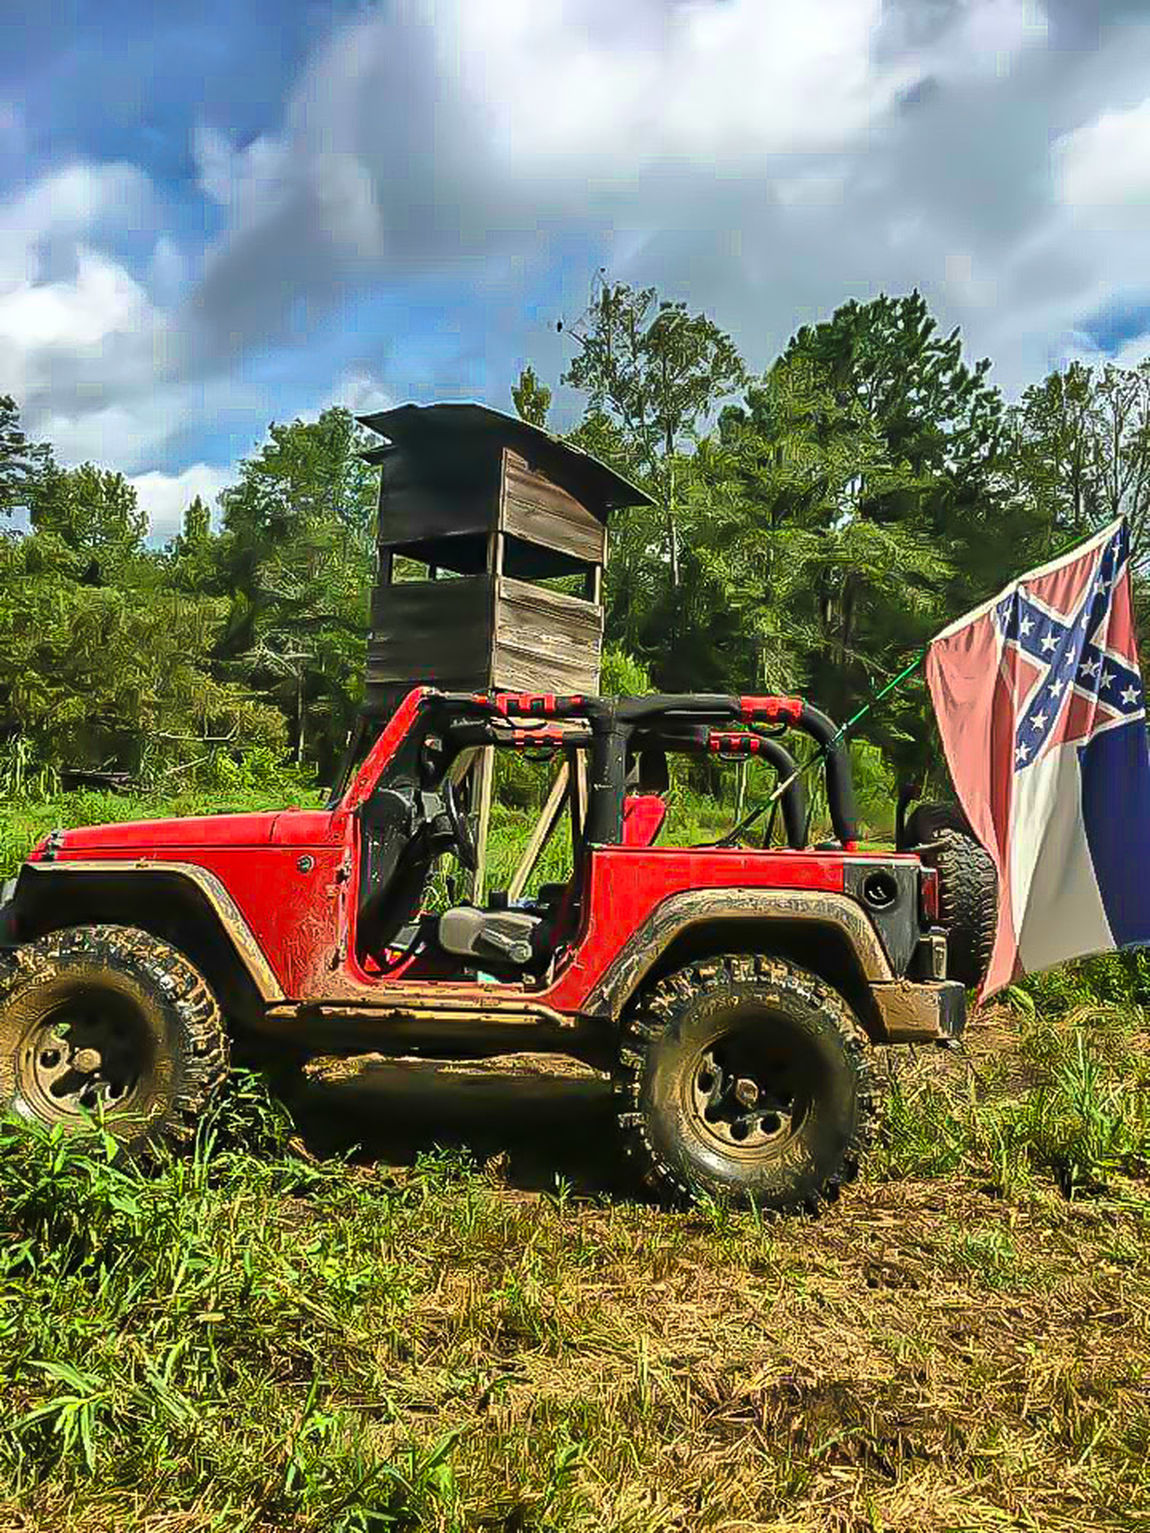 Cloud - Sky Old-fashioned Agriculture Sky No People Day Mississippi  Flag Flag Of Mississippi Mississippi Summer State Flag State Flags Confederate Confederate Flag Bars And Stars Pride Jeep Jeep Wrangler  Red Jeep Jeeps Jeeplove Outdoor Photography Trail Riding Mudding  Mud Riding